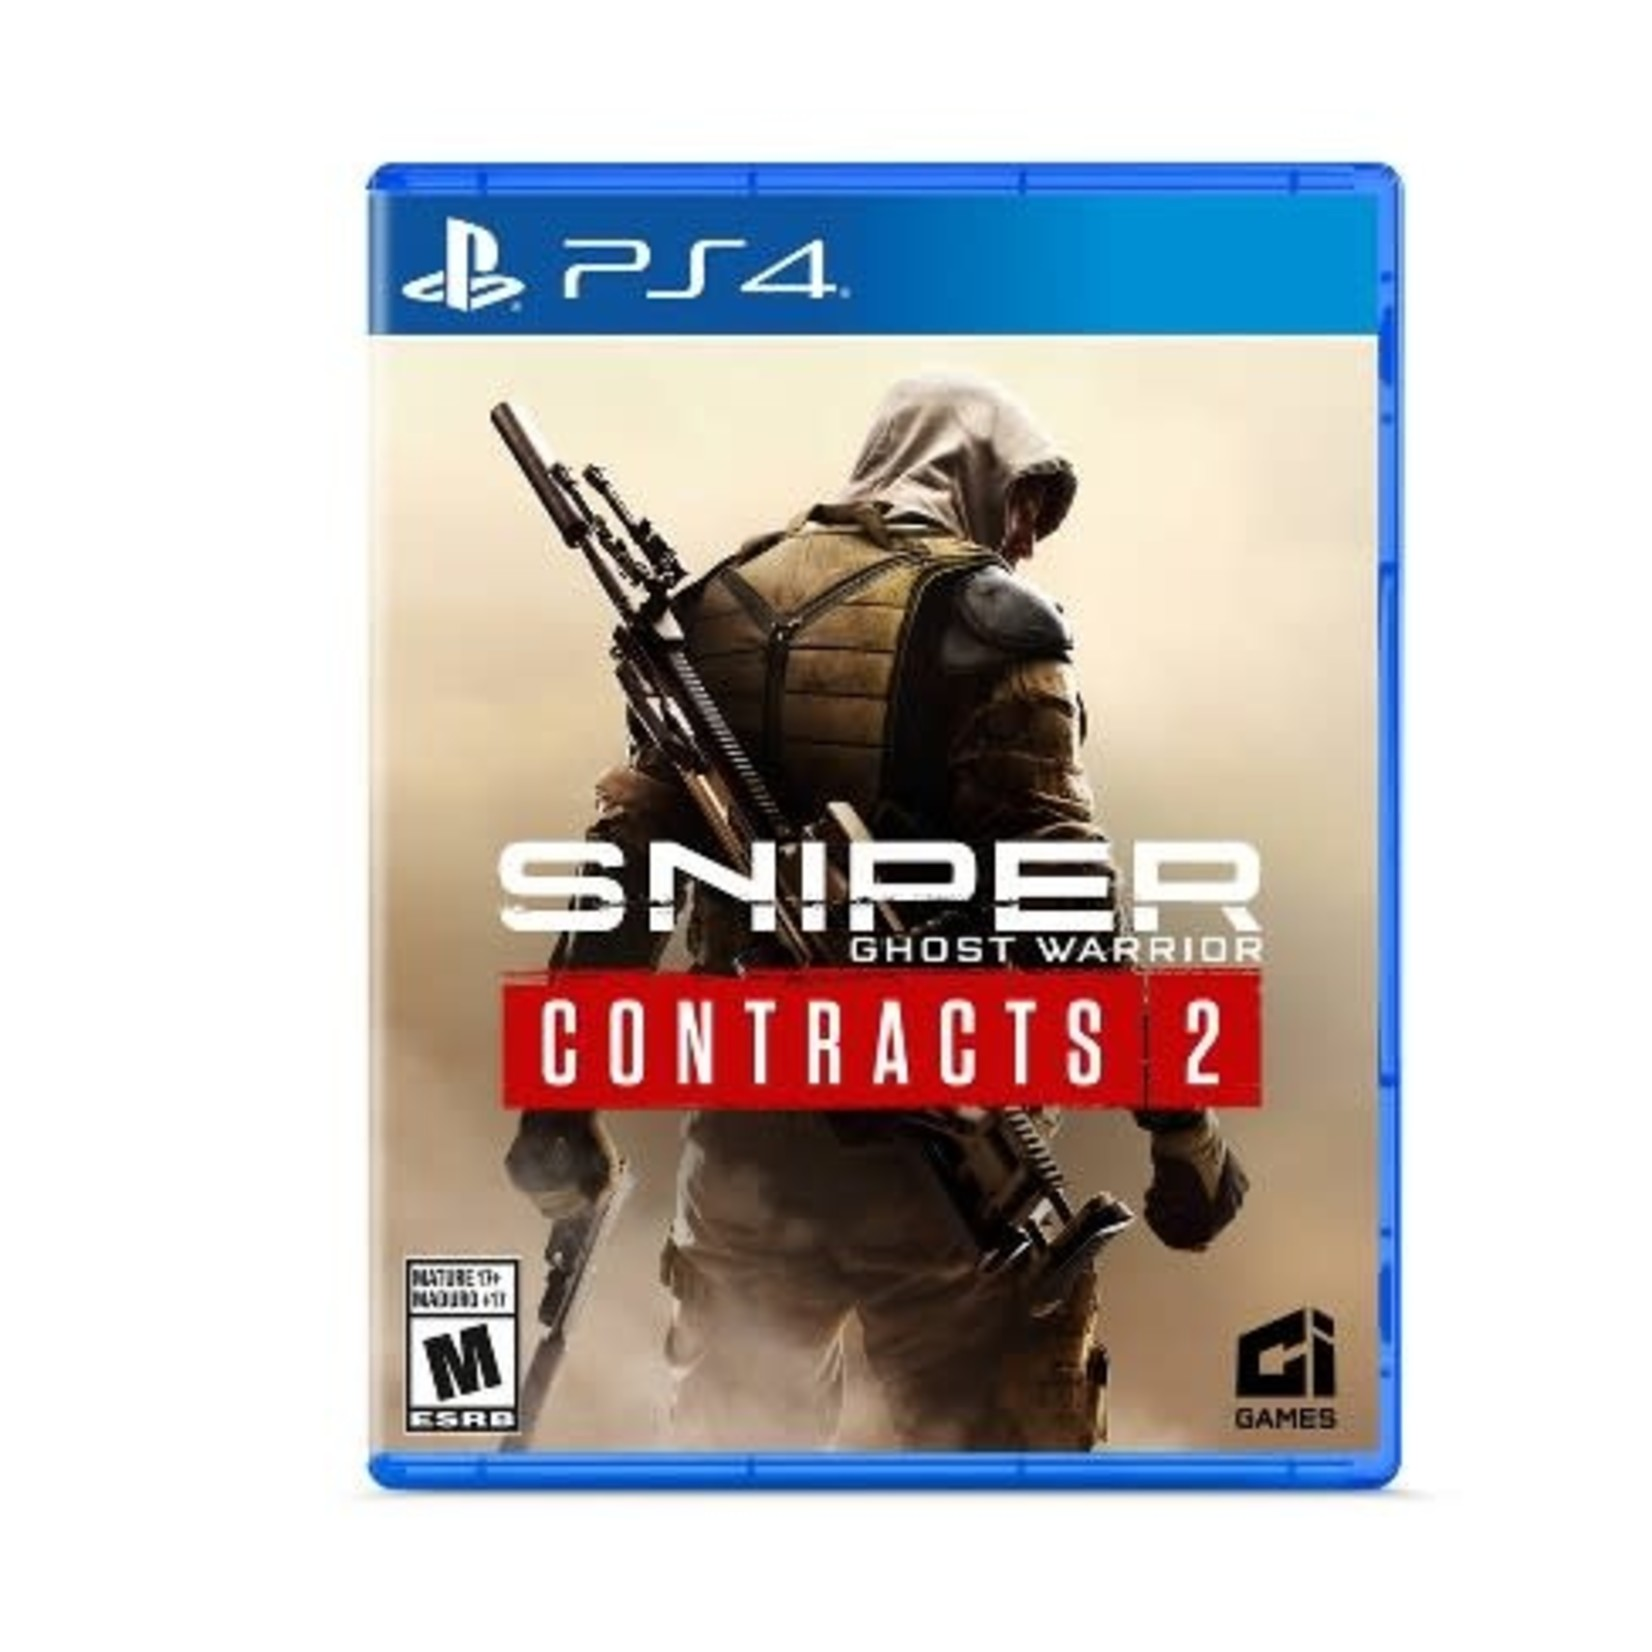 PS4U-Sniper Ghost Warrior: Contracts